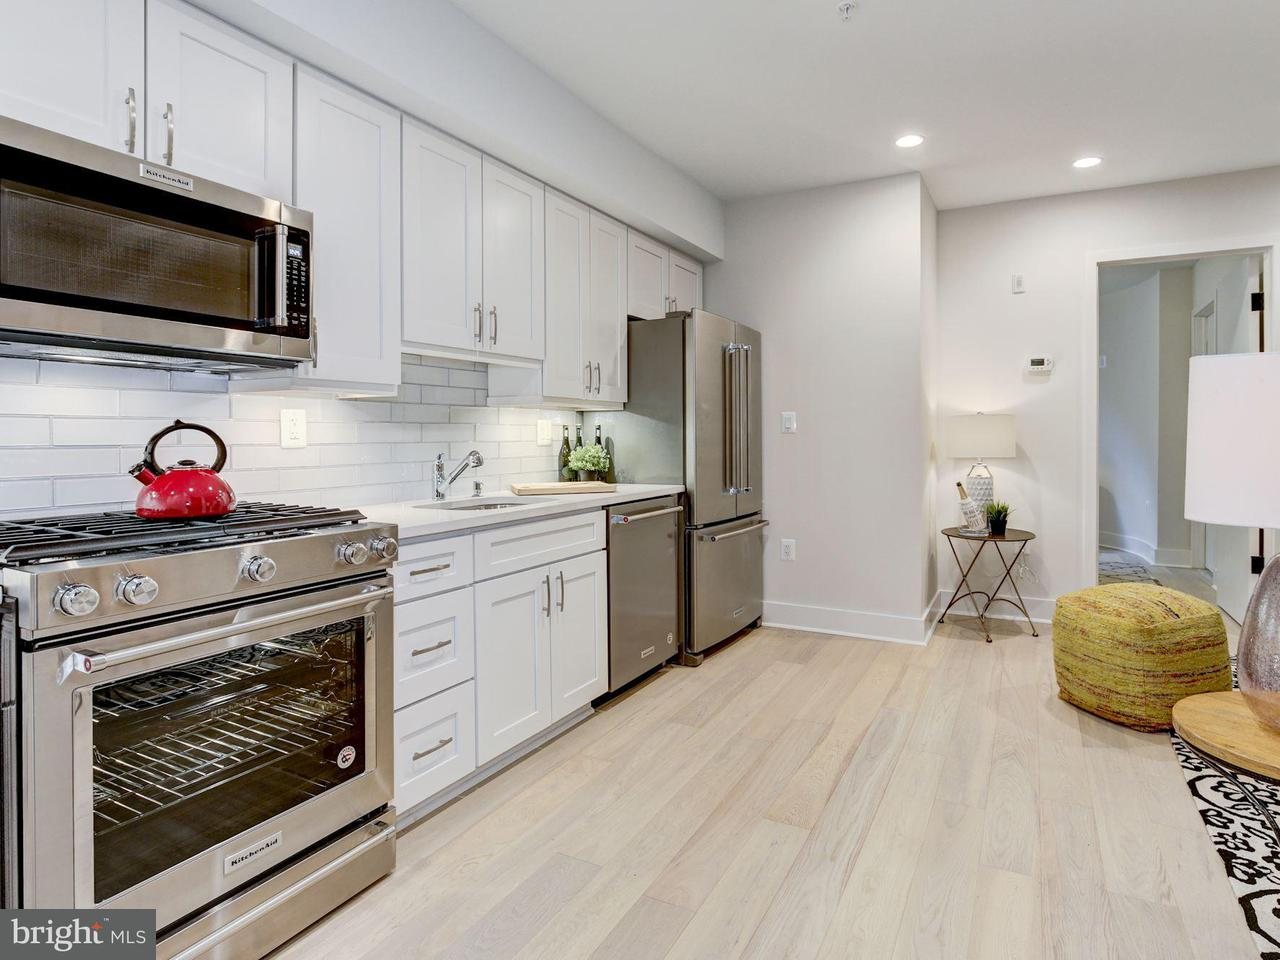 Single Family for Sale at 475 New York Ave NW #1 Washington, District Of Columbia 20001 United States